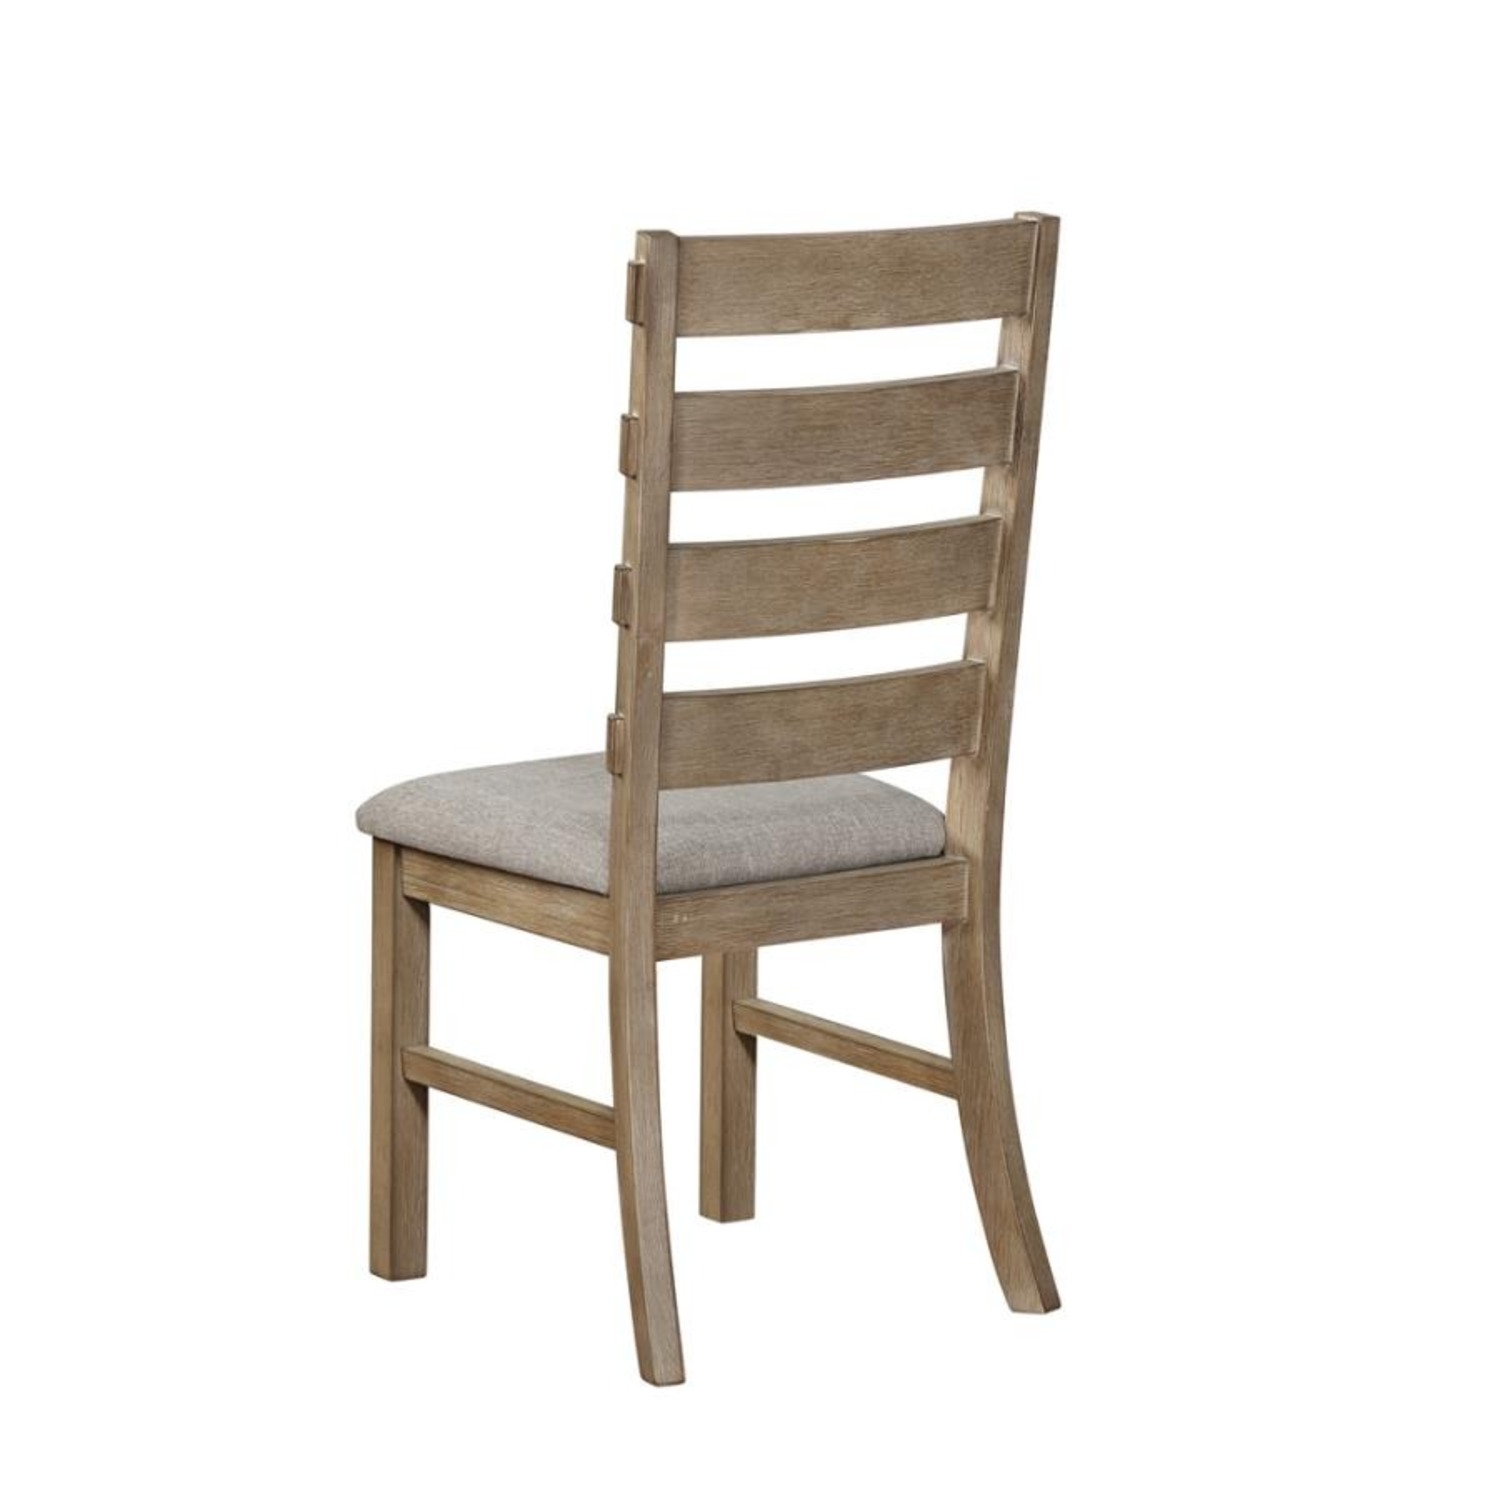 Rustic Dining Chair In Vineyard Oak Finish - image-3